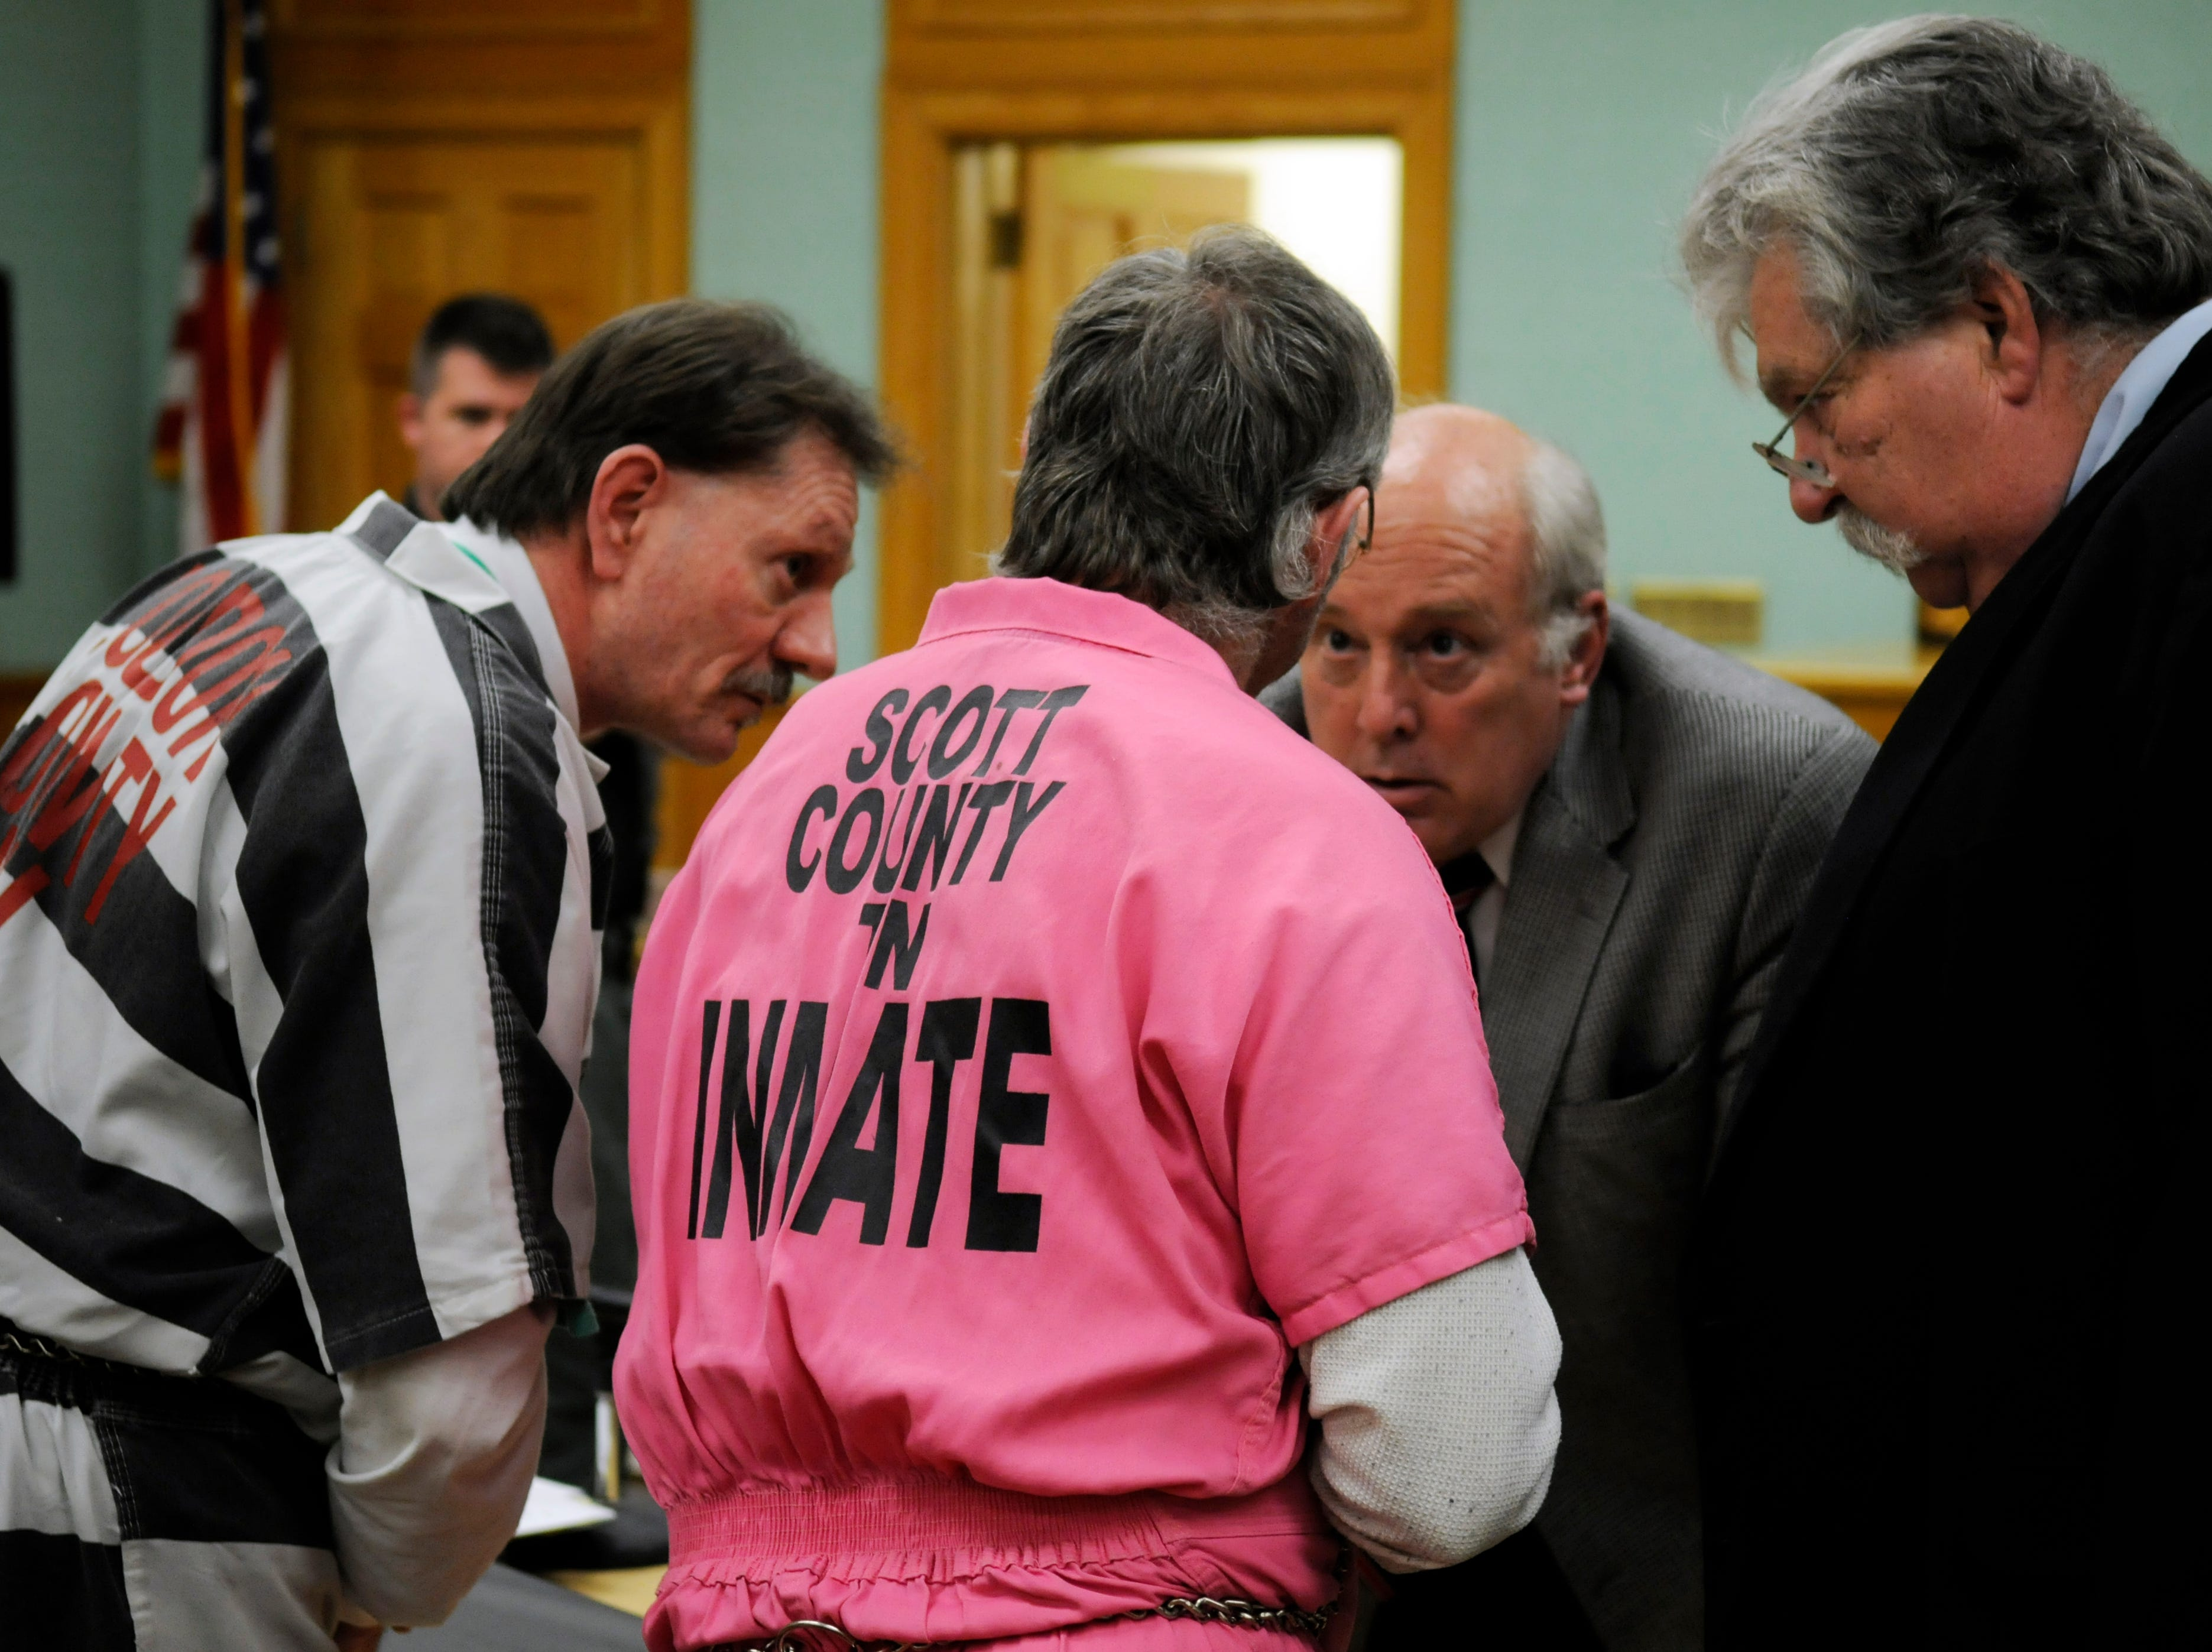 Leon, left, and Rocky, center, Houston talk to their attorneys Jim Logan, third from left, and Randy Rogers, right following a hearing Monday to set the conditions if they are able to make bond in Roane County. The Houstons are accused of murder in the May 11, 2006 shooting deaths of Roane County Sheriff's Department Deputy William Birl Jones and his ride-along pal Gerald Michael Brown when the pair showed up at Leon Houston's home in the Ten Mile community.